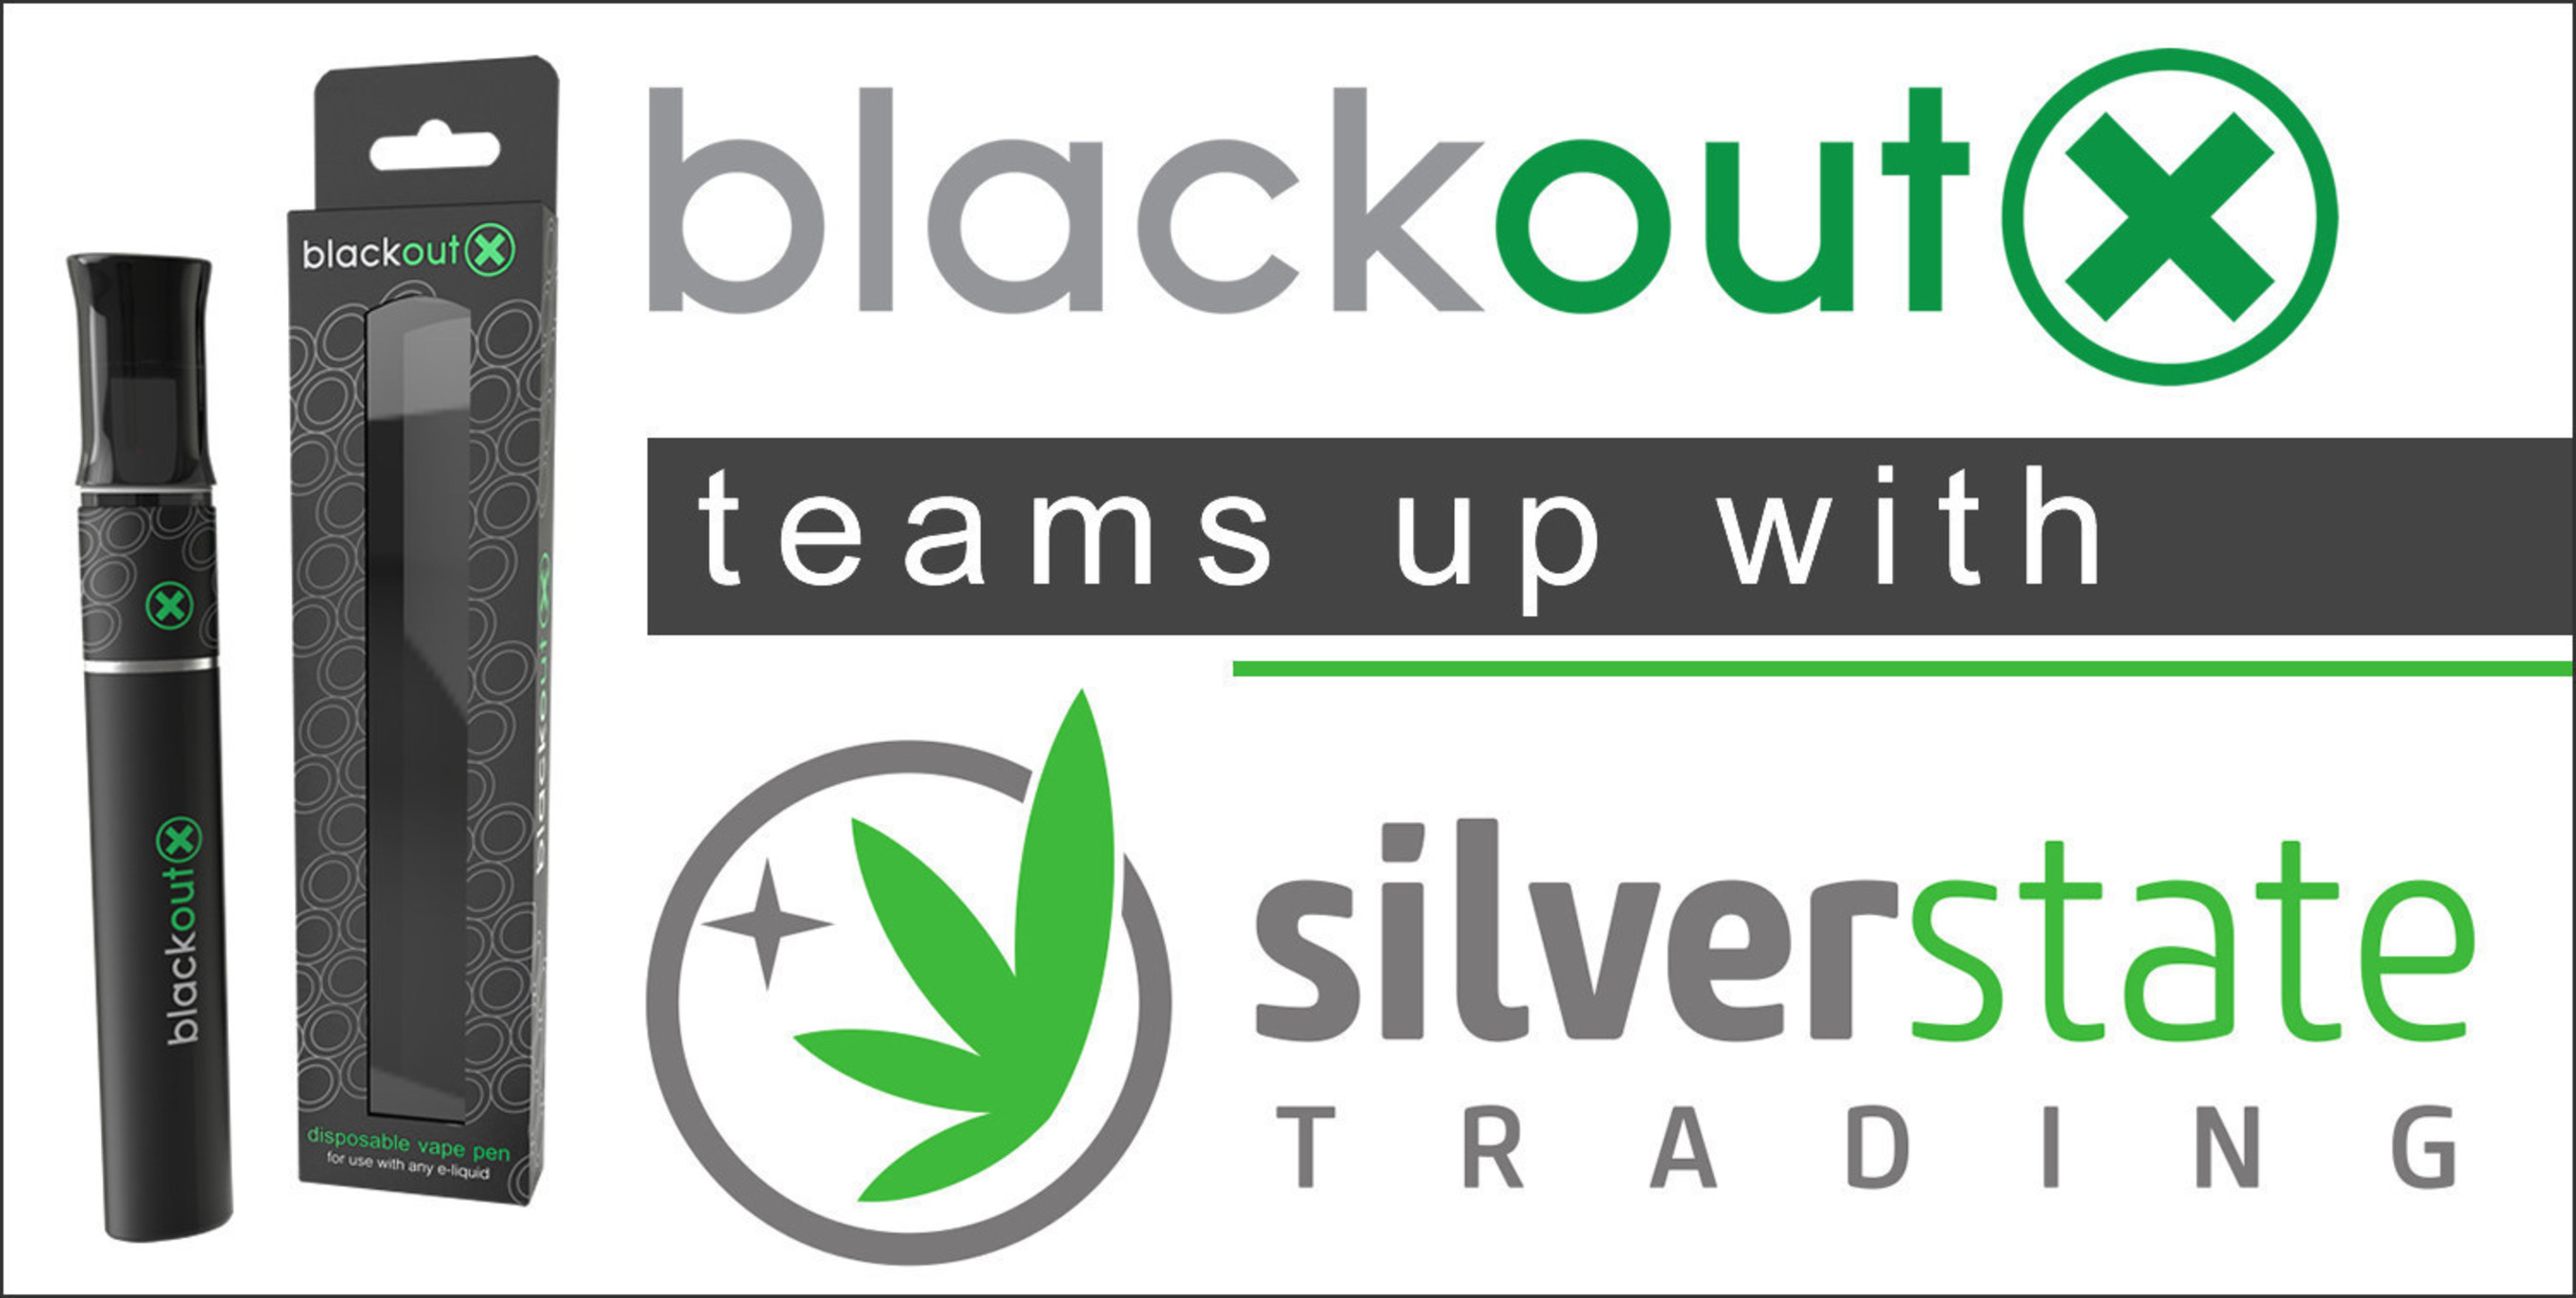 Blackout X teams up with Silver State Trading to deliver disposable vaporizers pre-filled with medical cannabis oils and waxes in Nevada.  Blackoutx.com